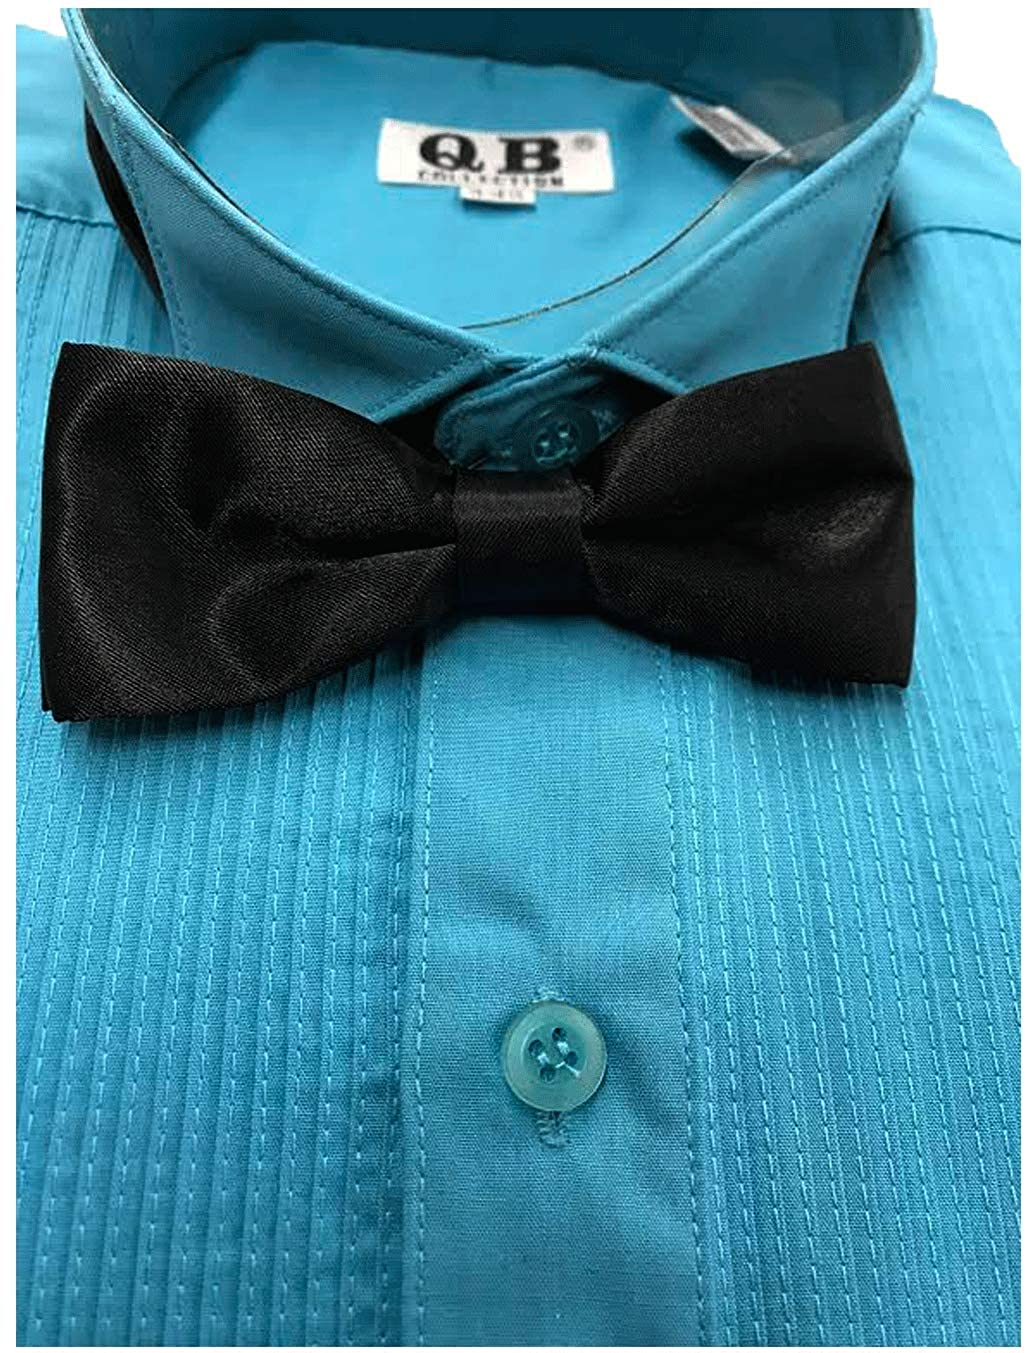 Trend Setters Boys Turquoise Pleated Tuxedo Long Sleeve Dress Shirt with Black Bow Tie Small, 14-14.5